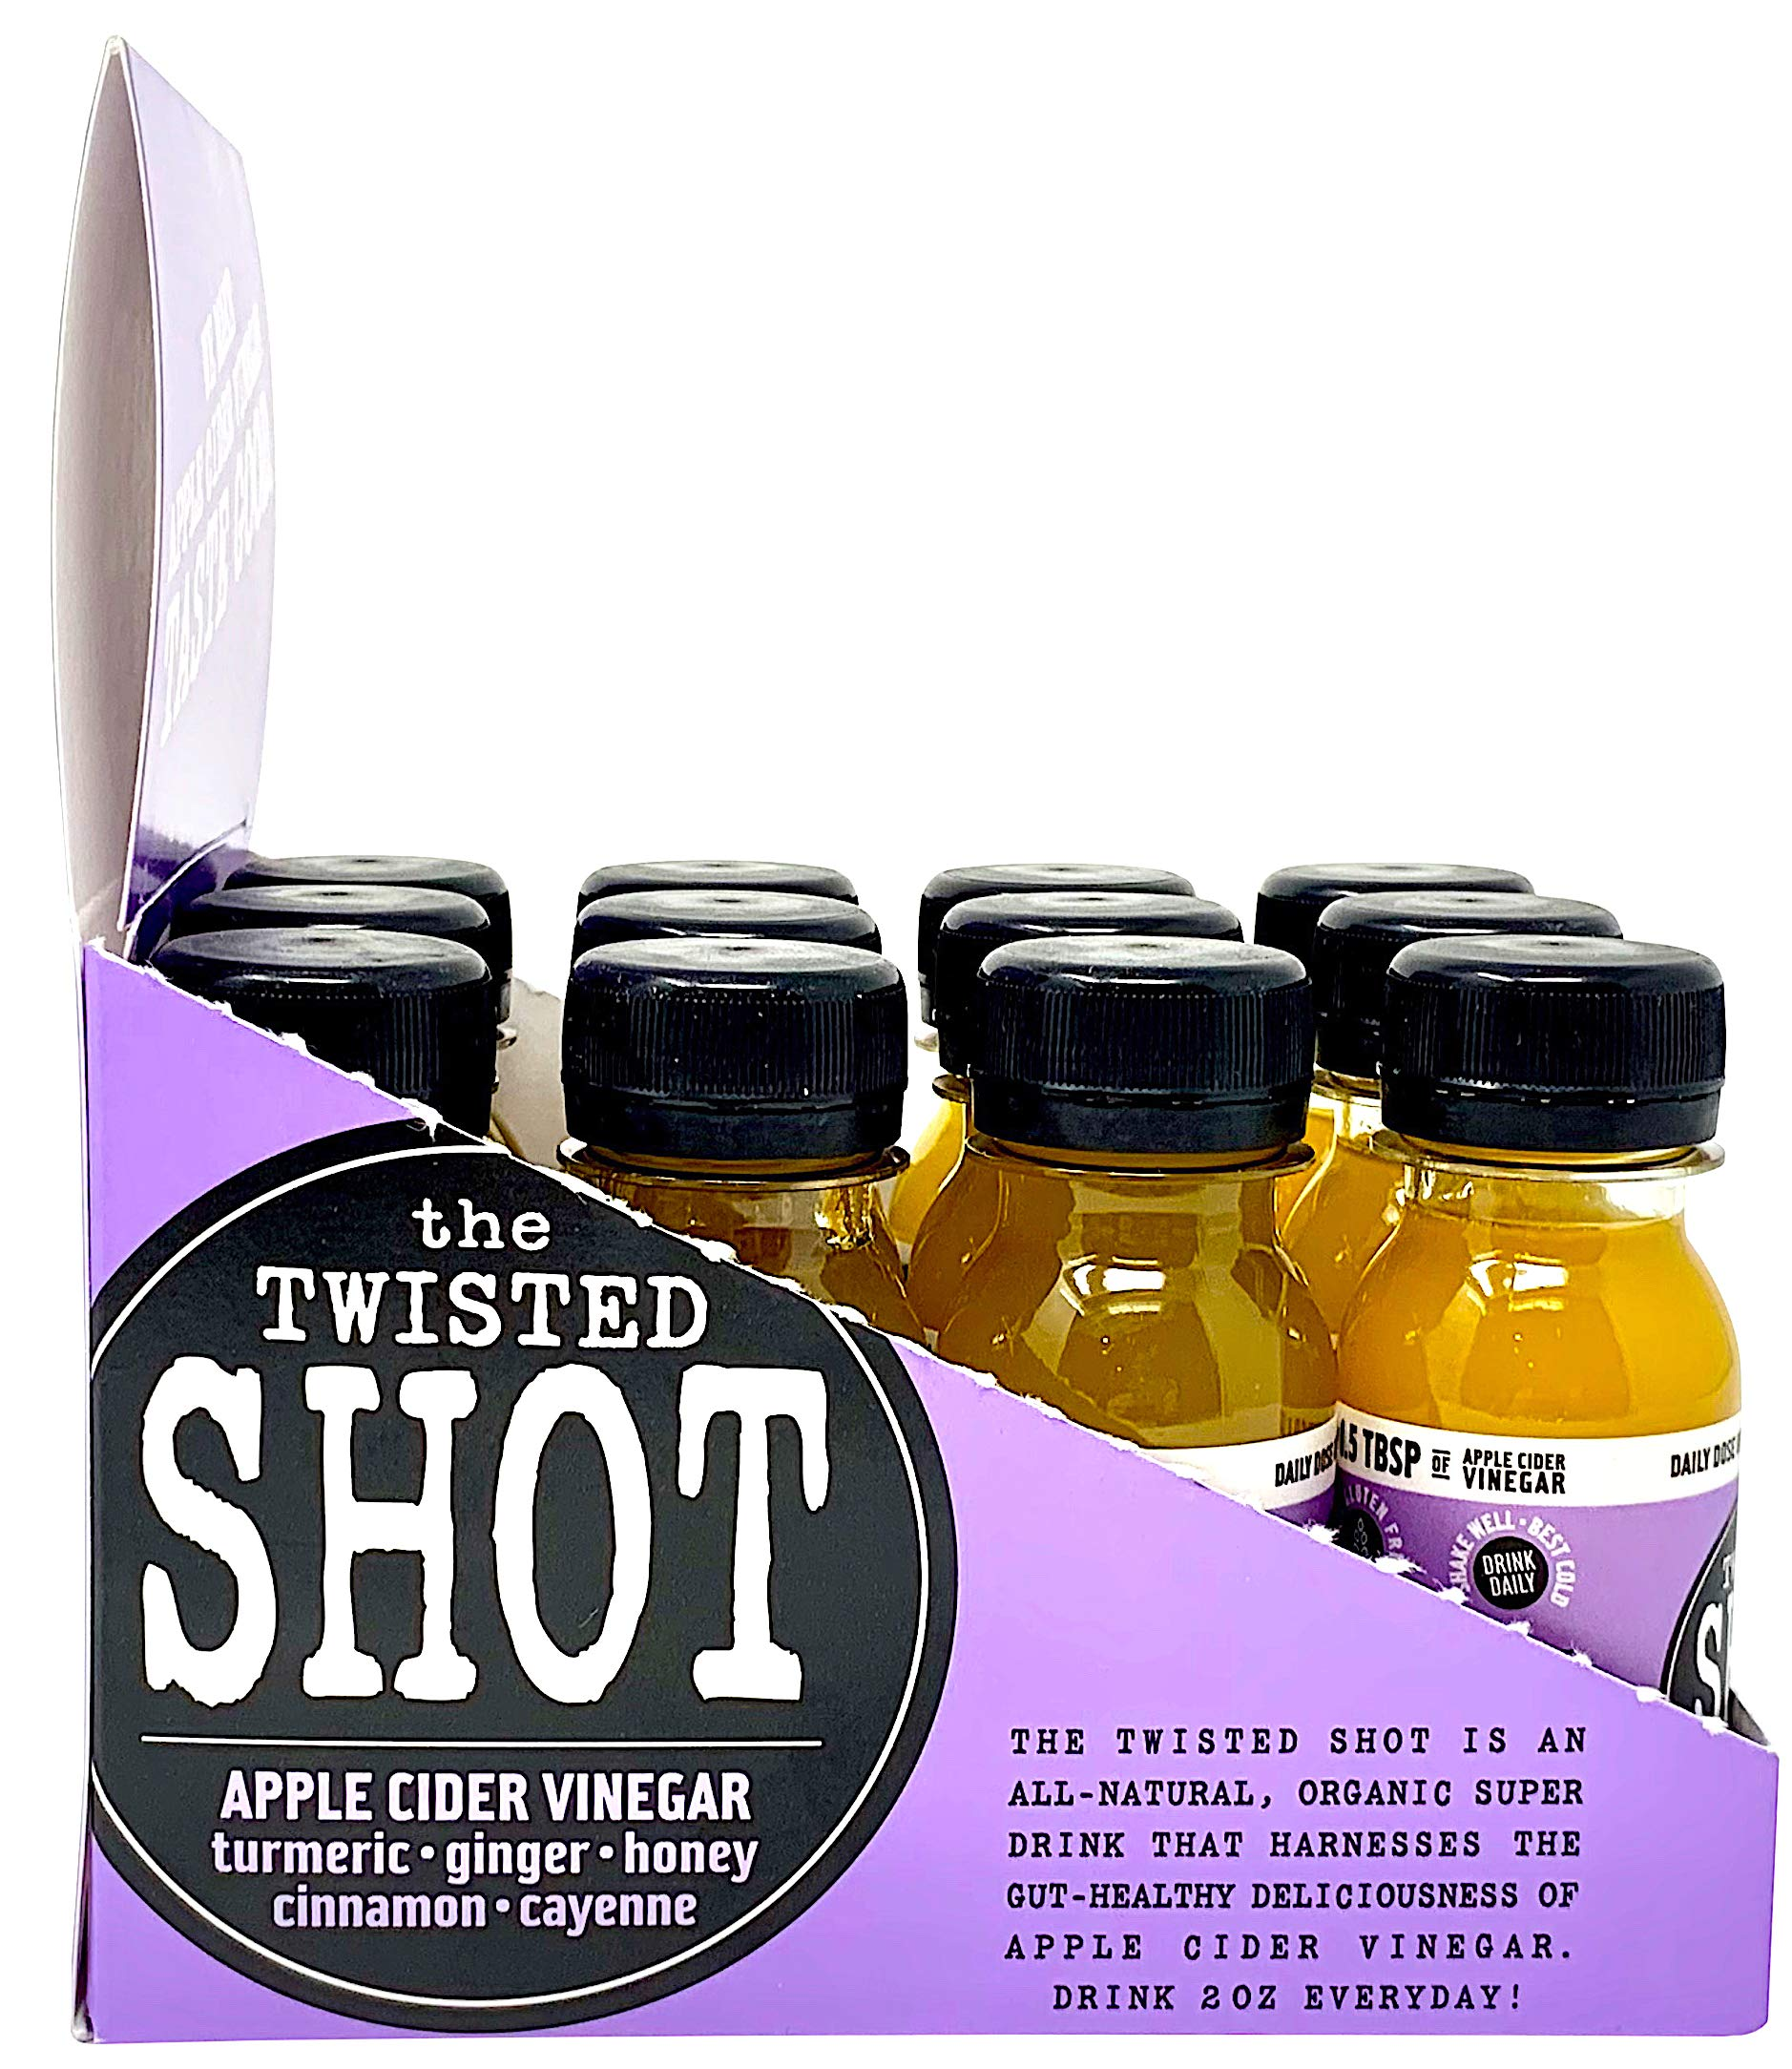 The Twisted Shot - Organic Apple Cider Vinegar shot with Turmeric, Ginger, Cinnamon, Honey & Cayenne - 48-pack of 2oz shots by The Twisted Shrub (Image #7)